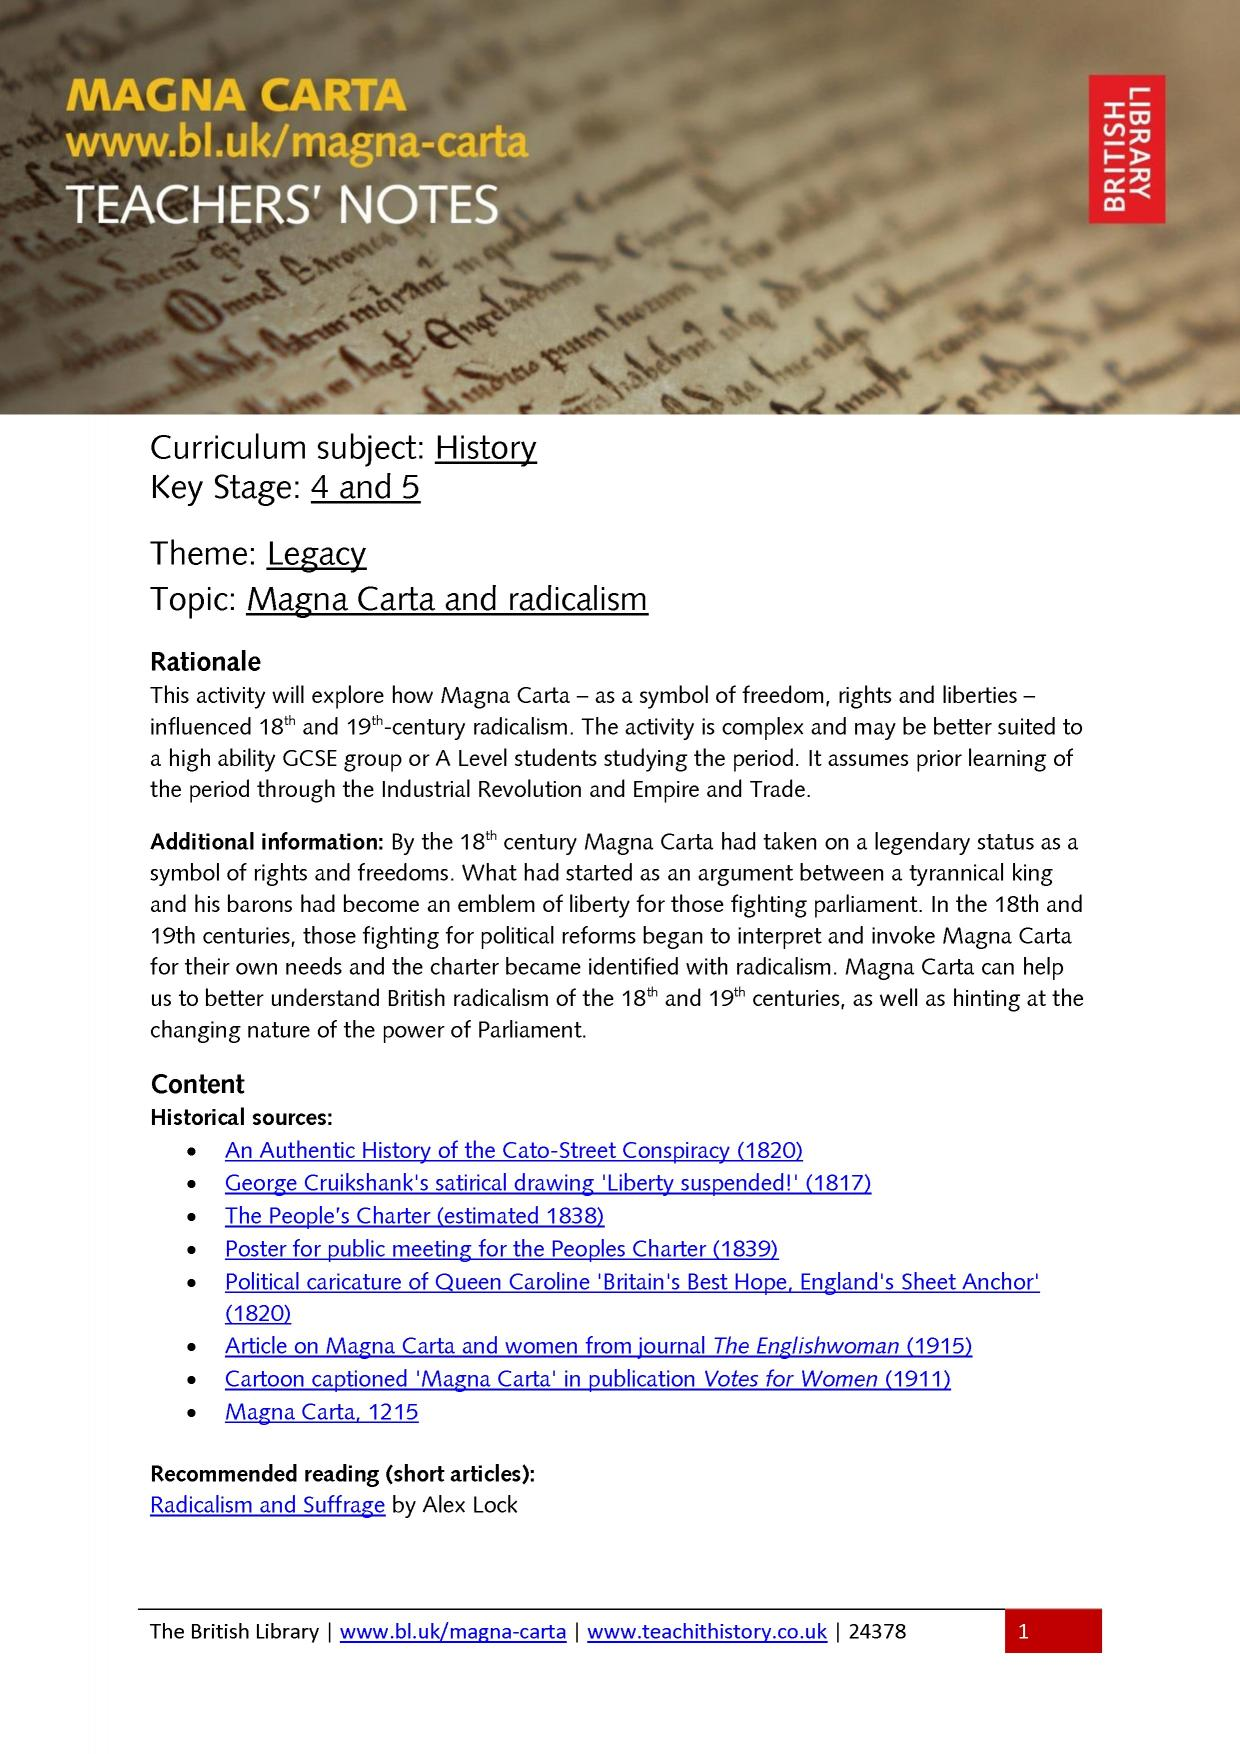 magna carta causes and contents Through careful examination of an image of a 1775 massachusetts thirty-shilling note from the smithsonian's national museum of american history collections, students will discover the reason paul revere featured the magna carta (1215) on the currency he designed, and the symbolic importance the.